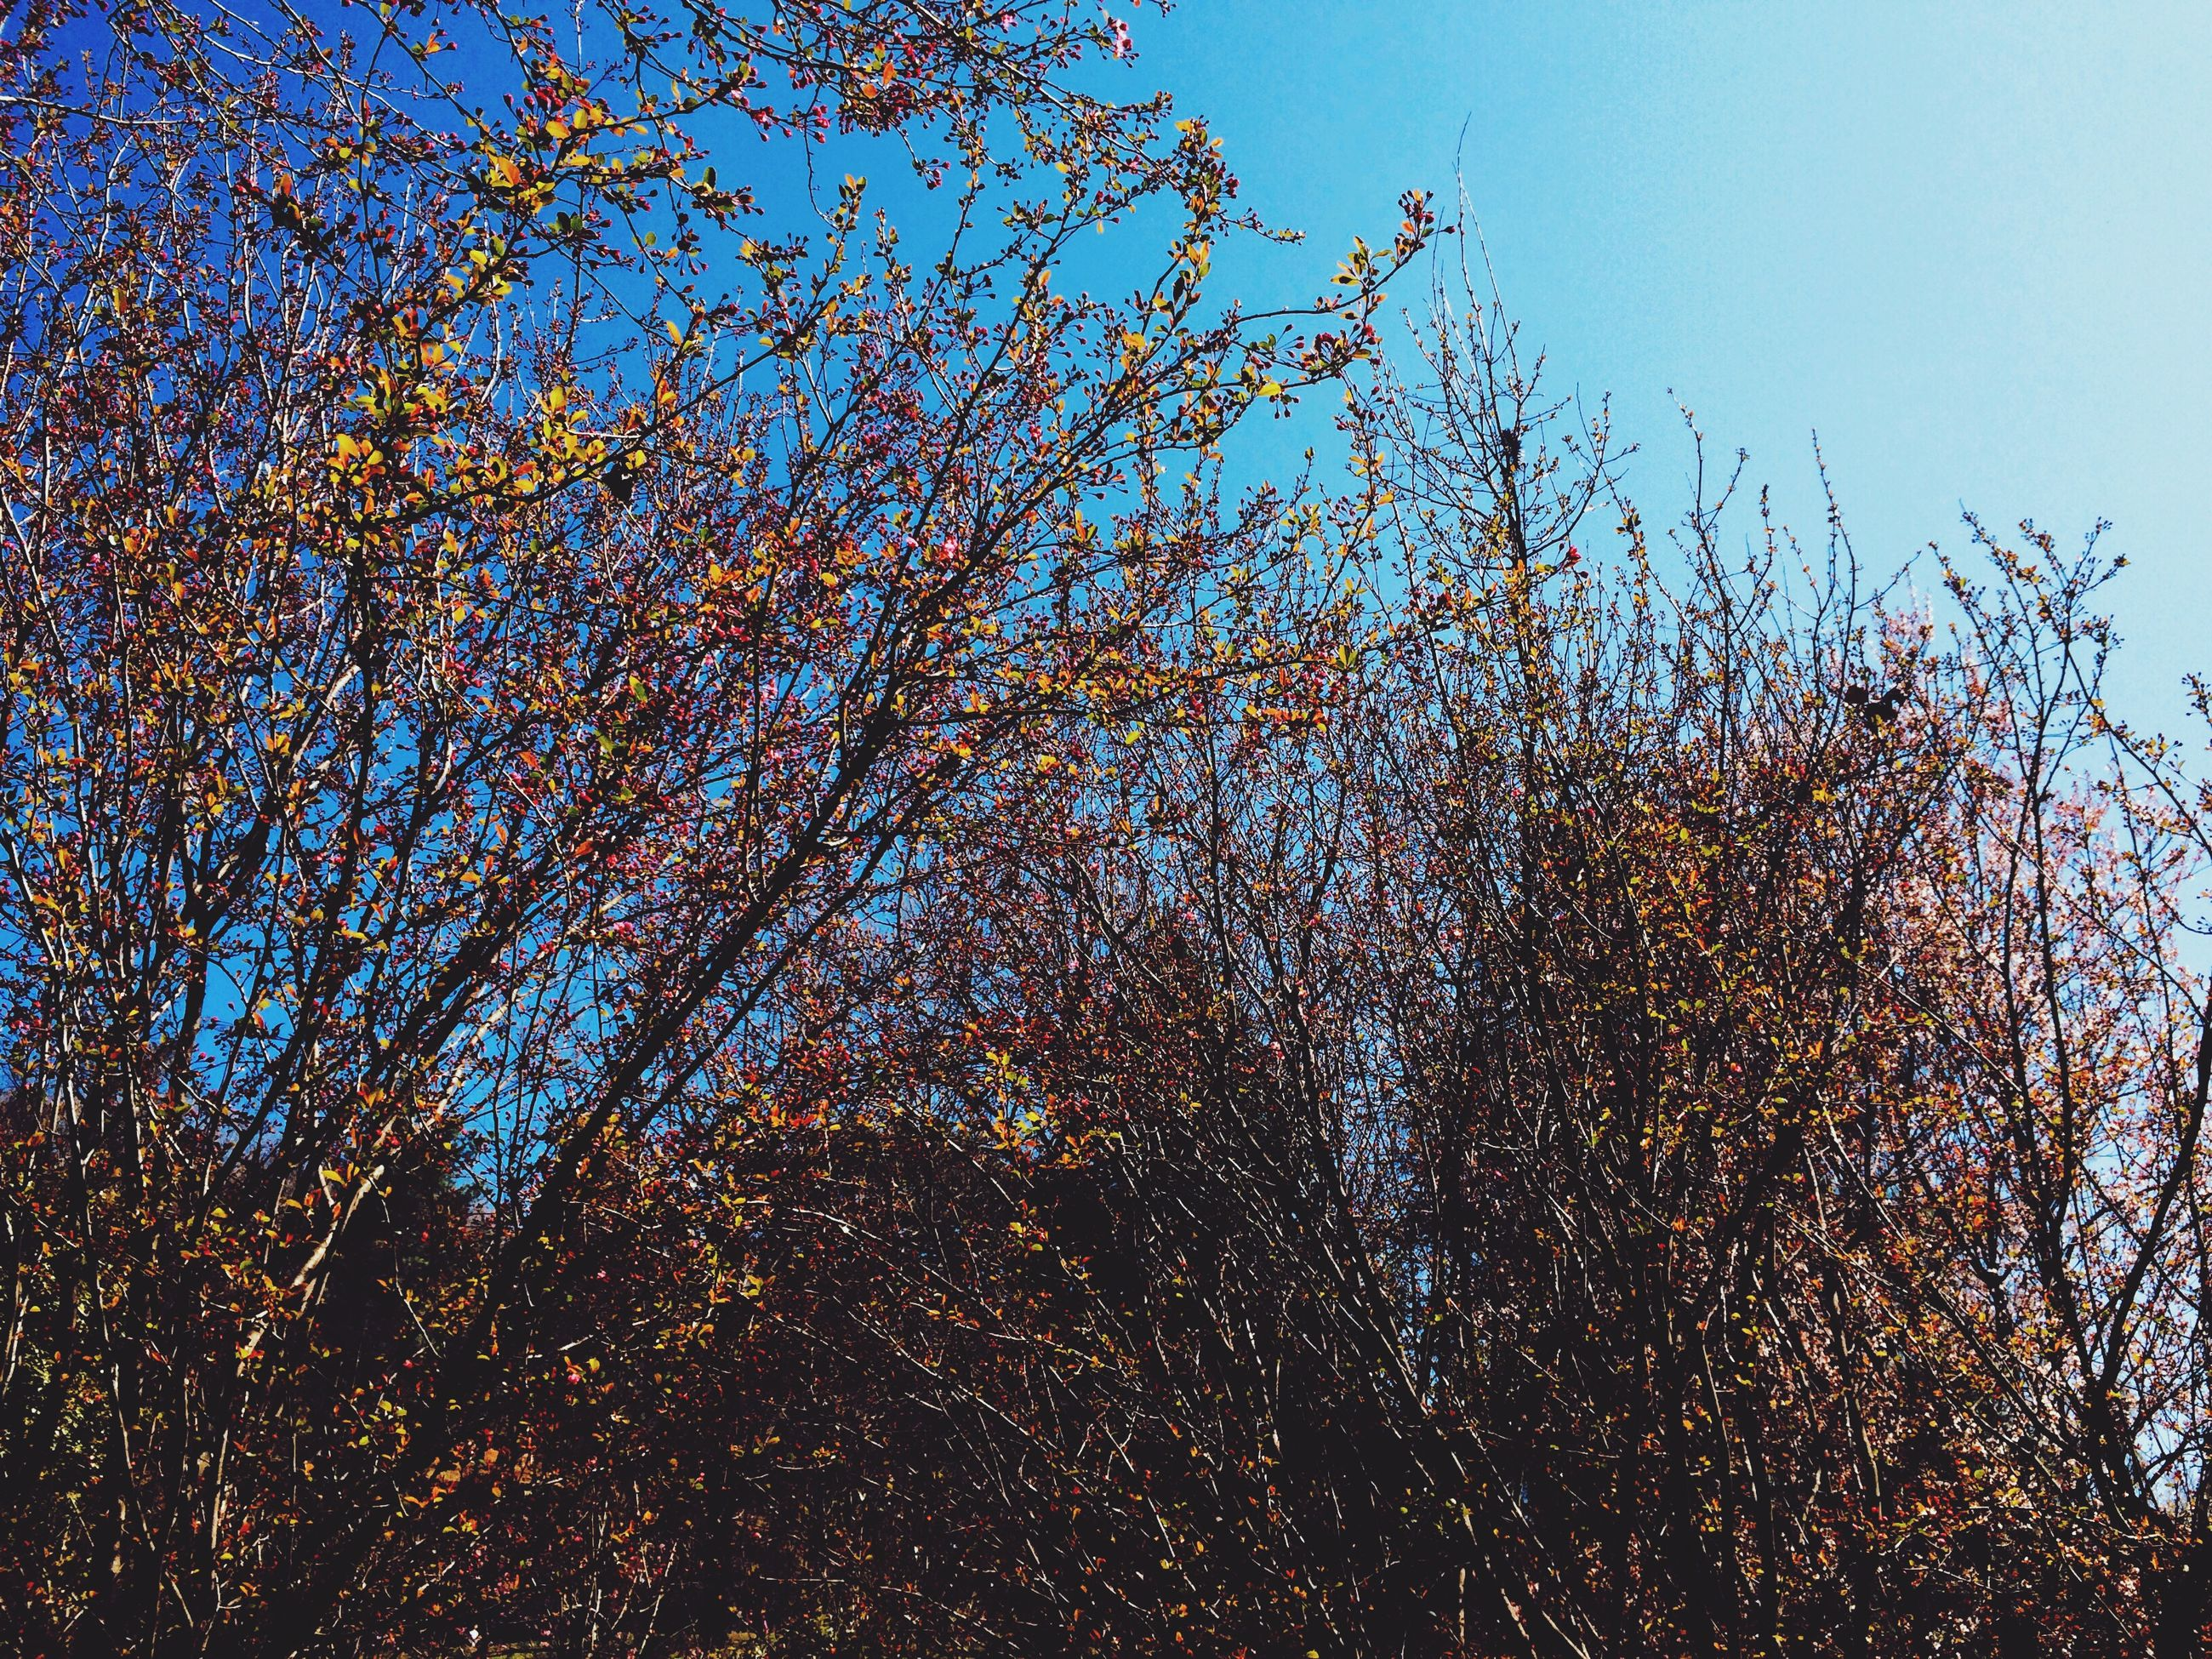 tree, clear sky, low angle view, blue, growth, branch, sky, nature, sunlight, beauty in nature, day, outdoors, tranquility, no people, bare tree, plant, leaf, growing, close-up, freshness